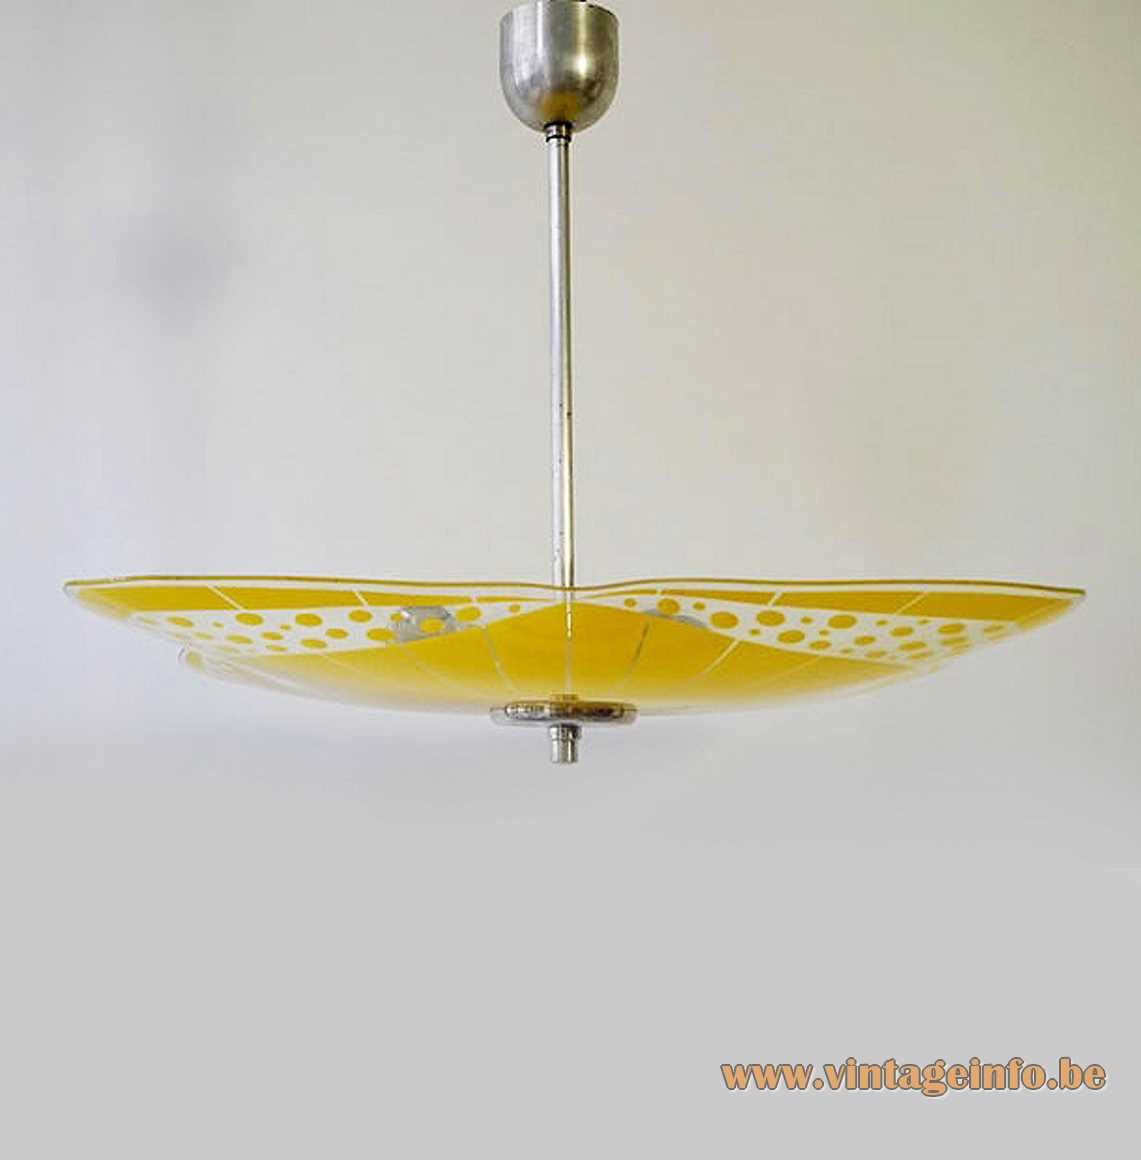 NAPAKO glass pendant lamp yellow & clear big flat disc aluminium rod canopy 1950s 1960s Czech Republic